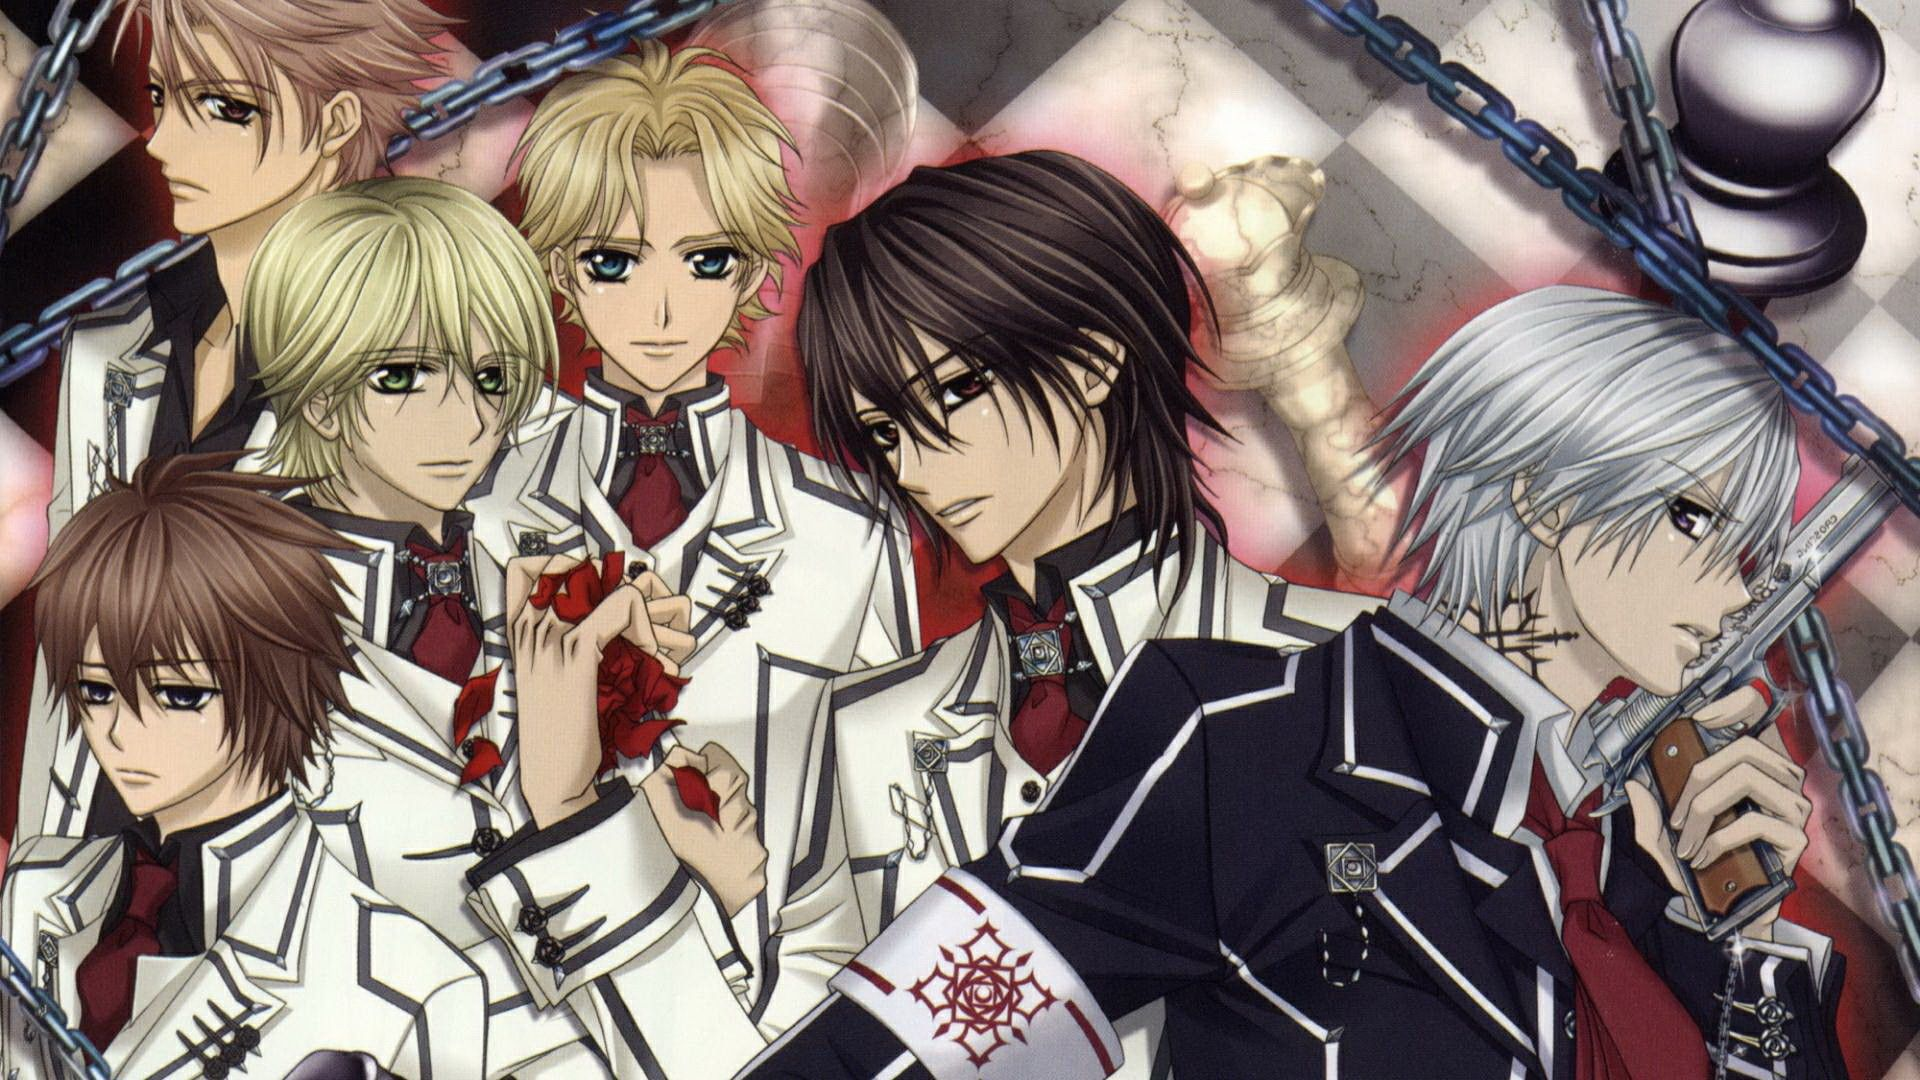 Pin by Audrey on Vampire Knight (With images) Vampire